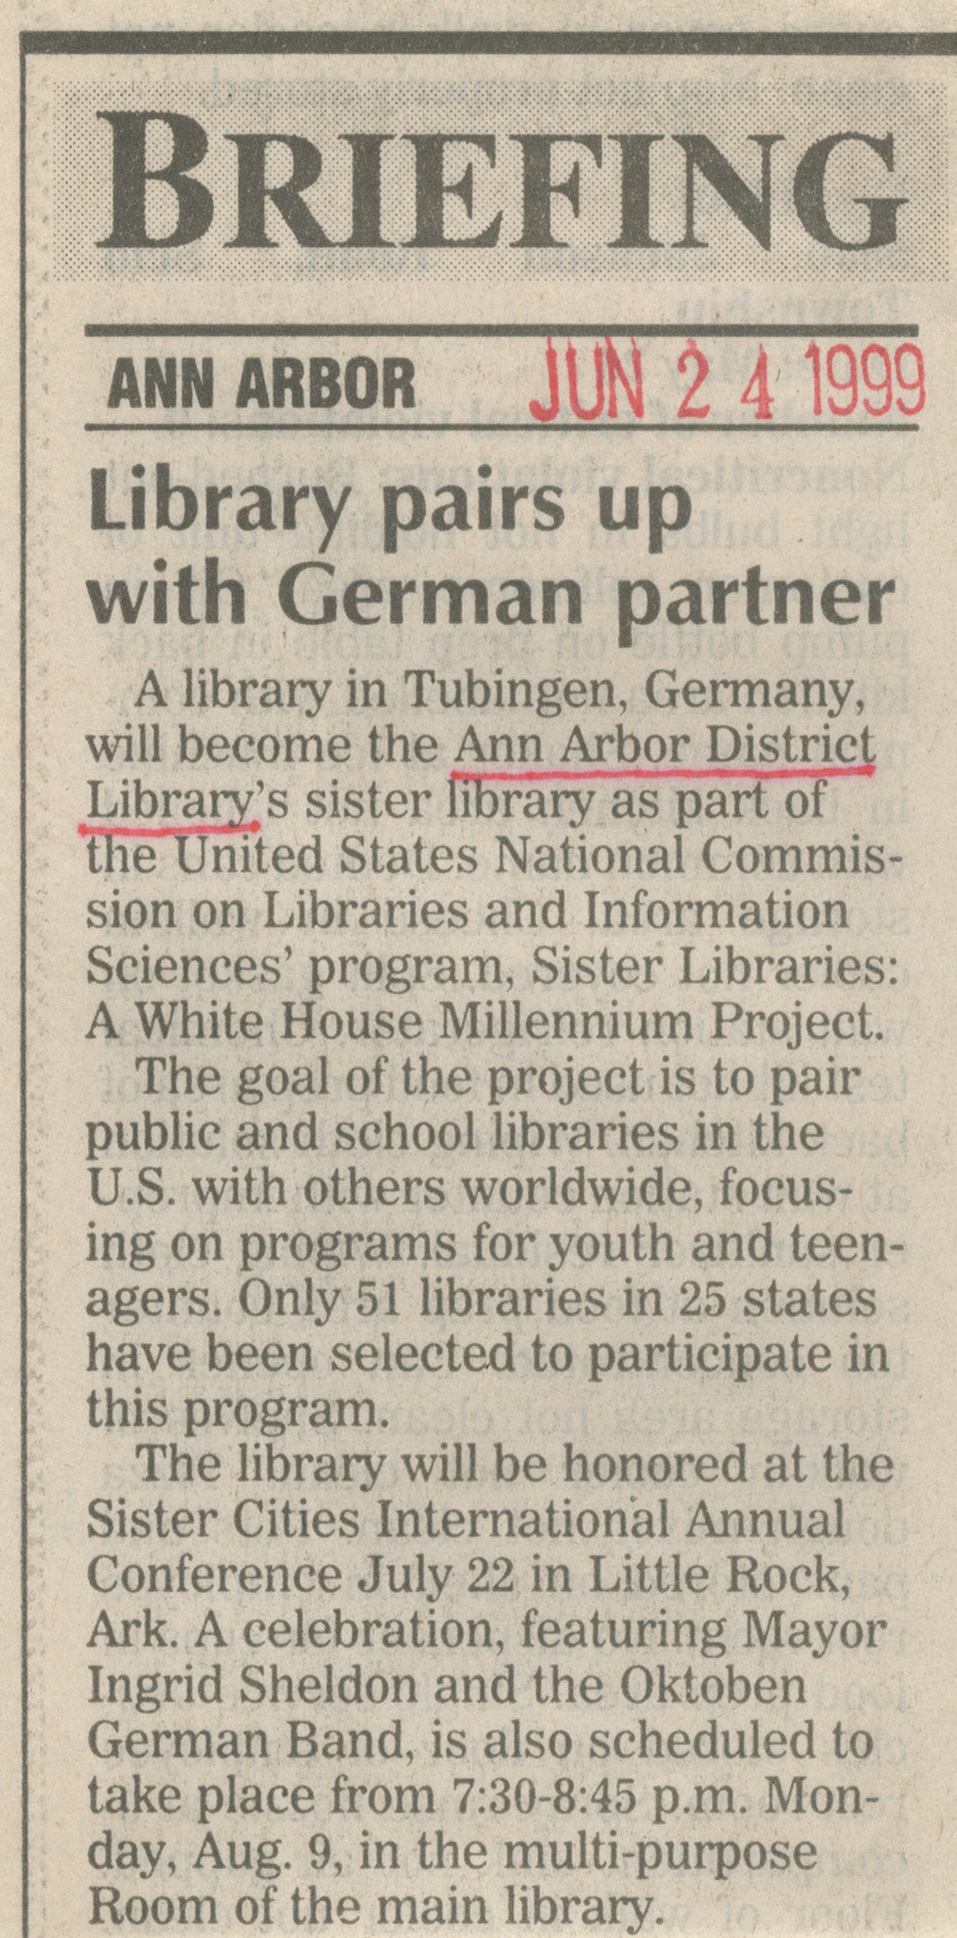 Library Pairs Up With German Partner image